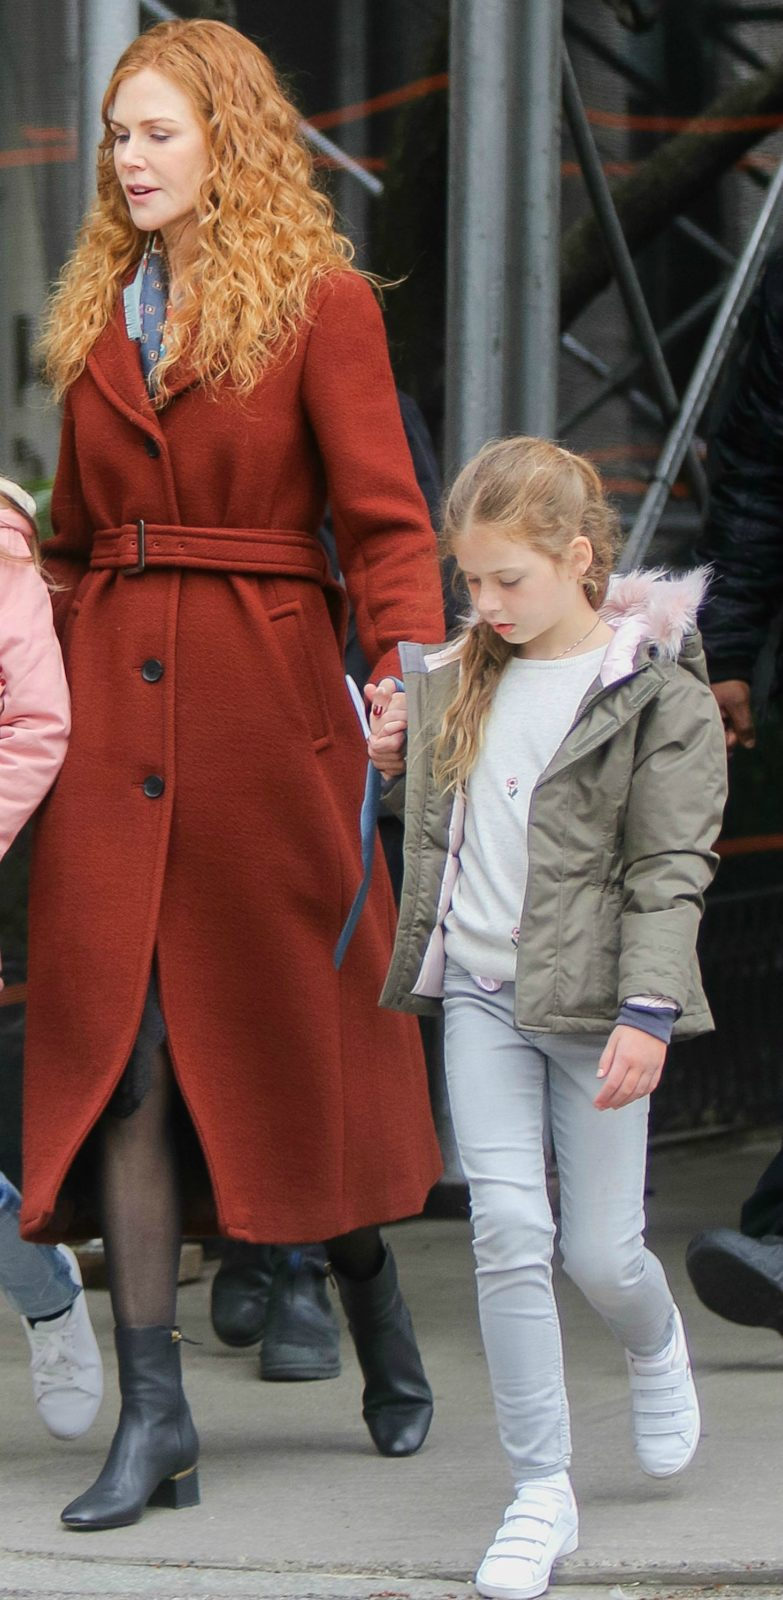 Nicole kept a protective hand on her daughter between takes. Source: Getty.